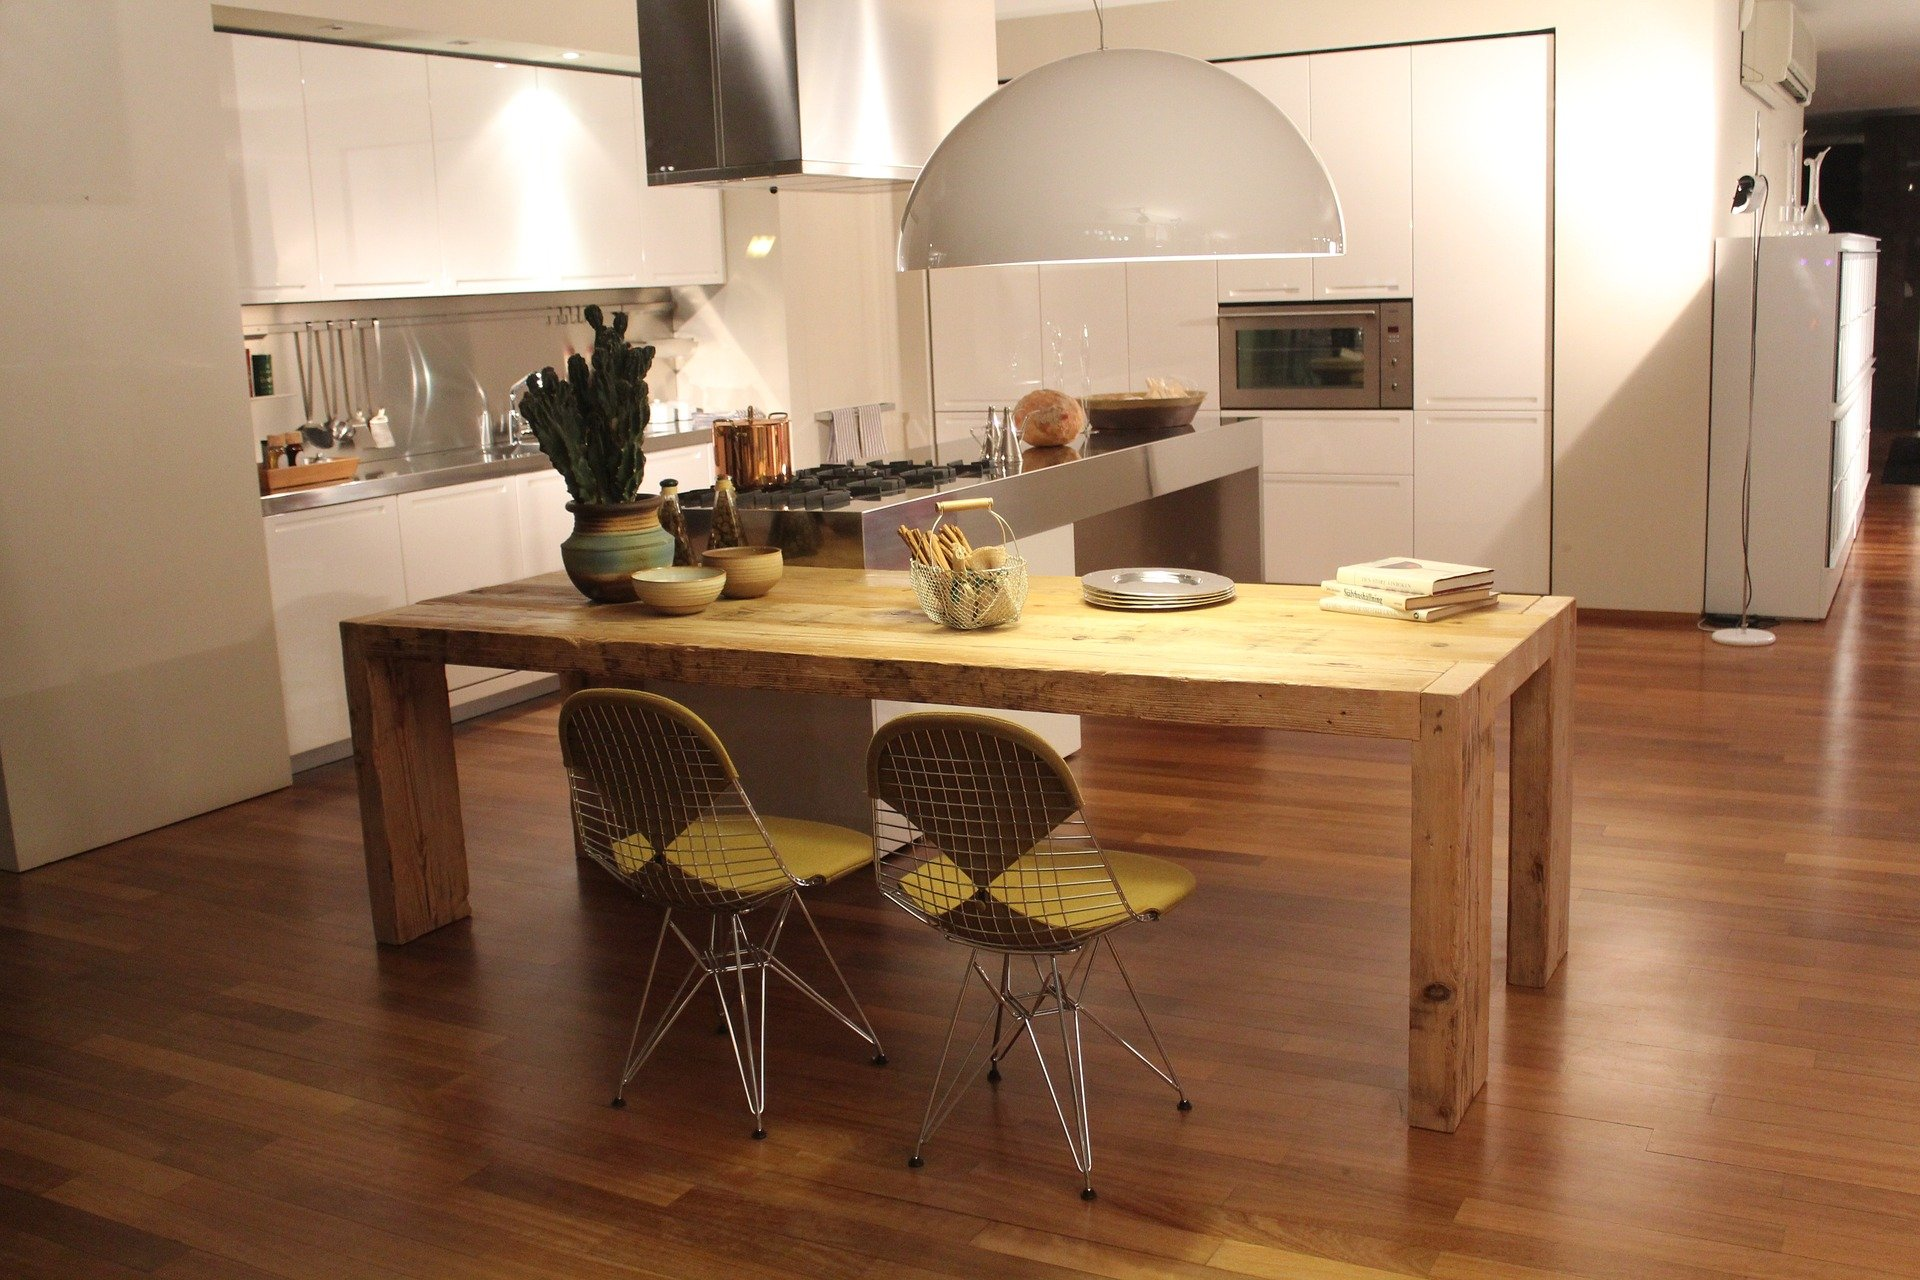 modern retro kitchen with warm wood tones